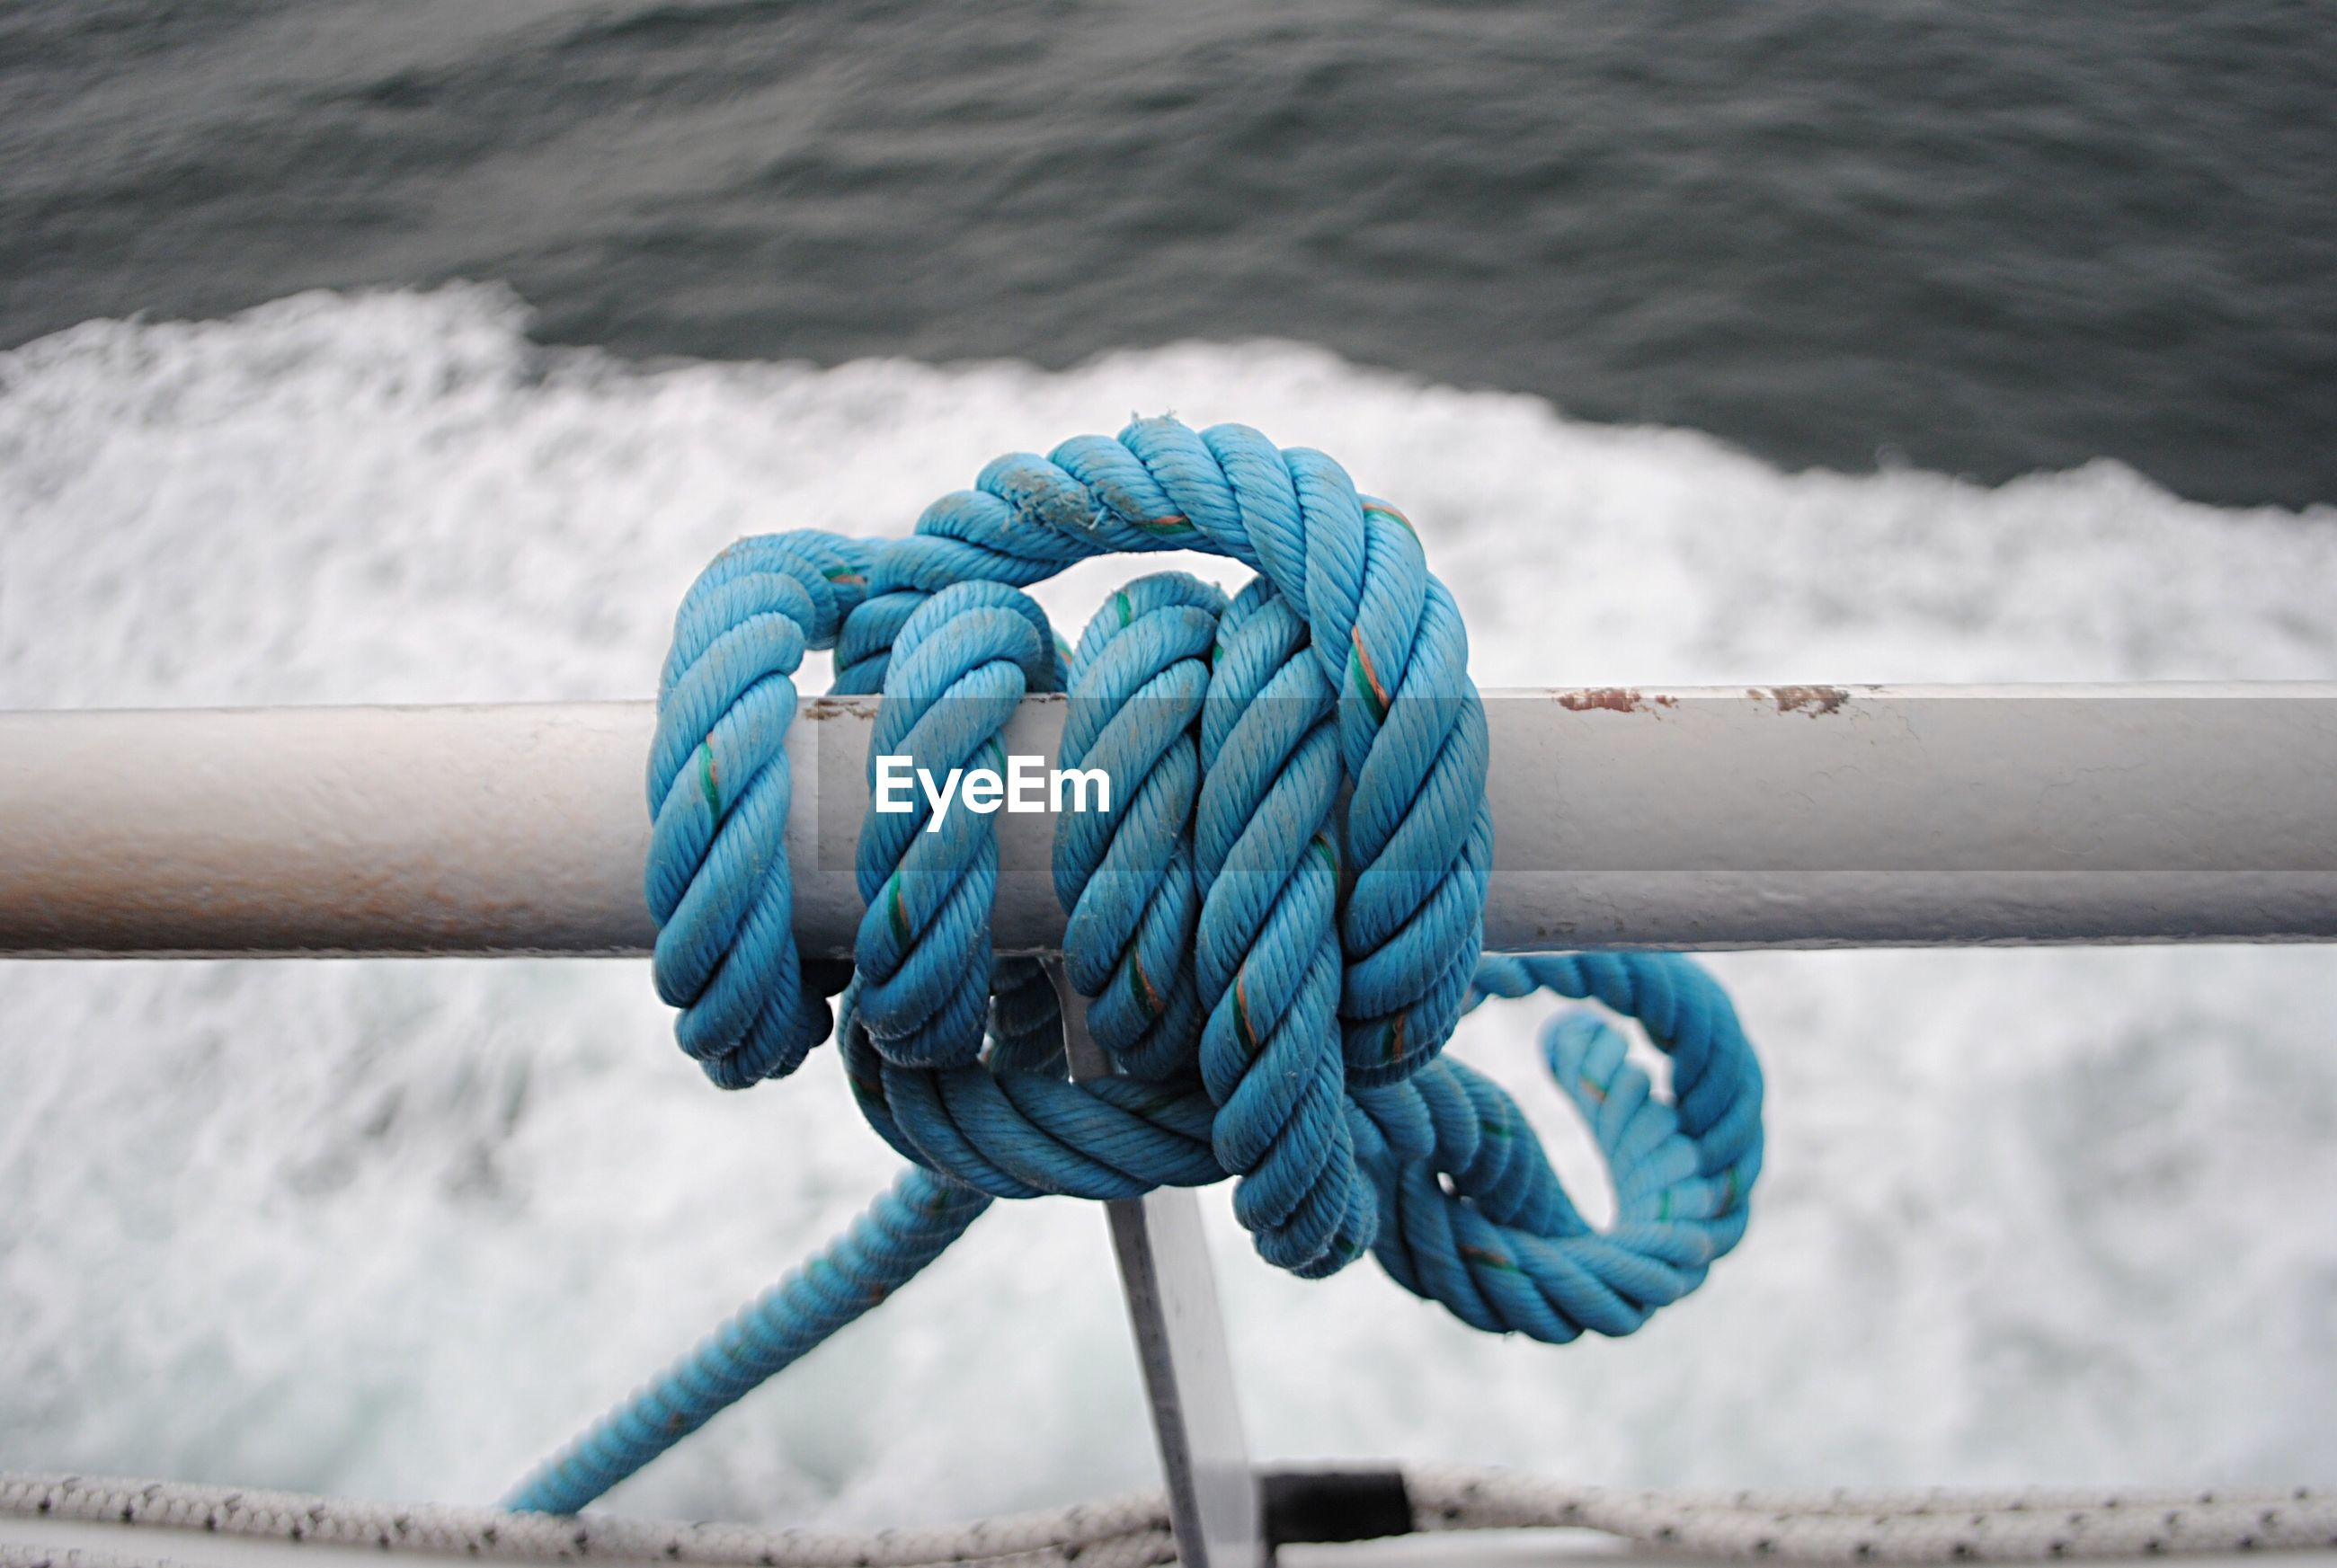 Close-up of rope tied to sailboat in sea